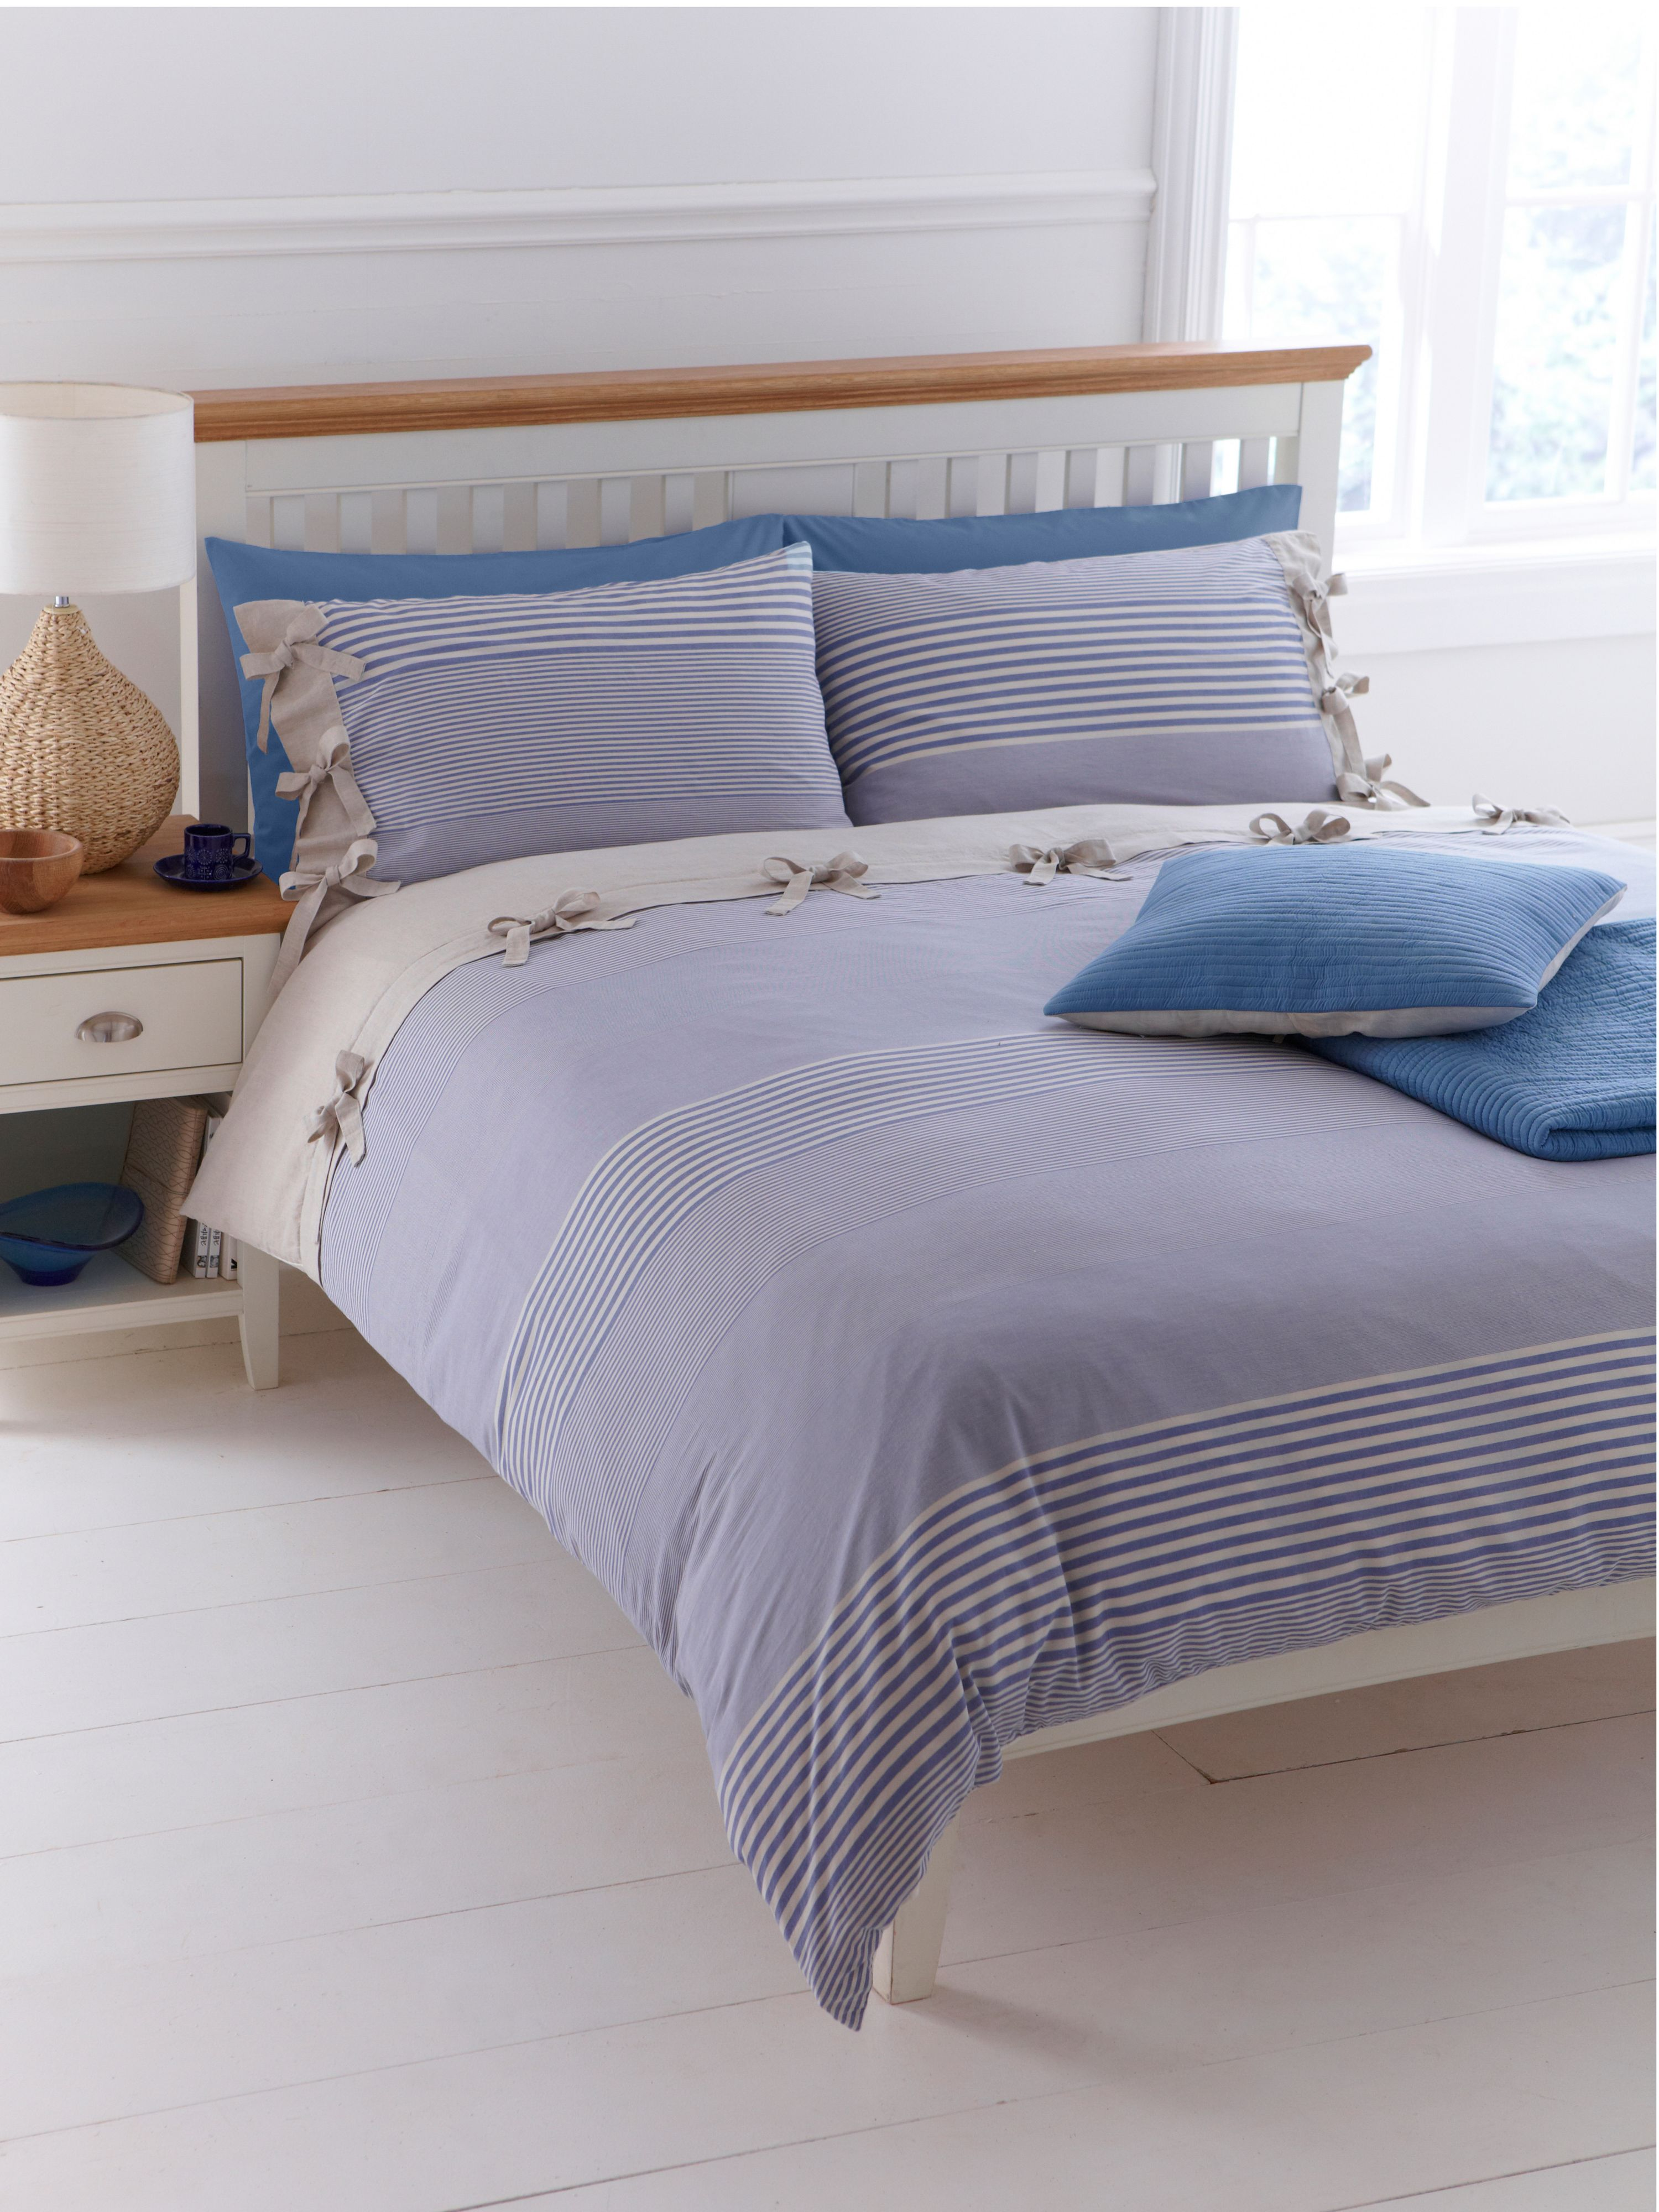 Woven Stripe superking duvet cover set